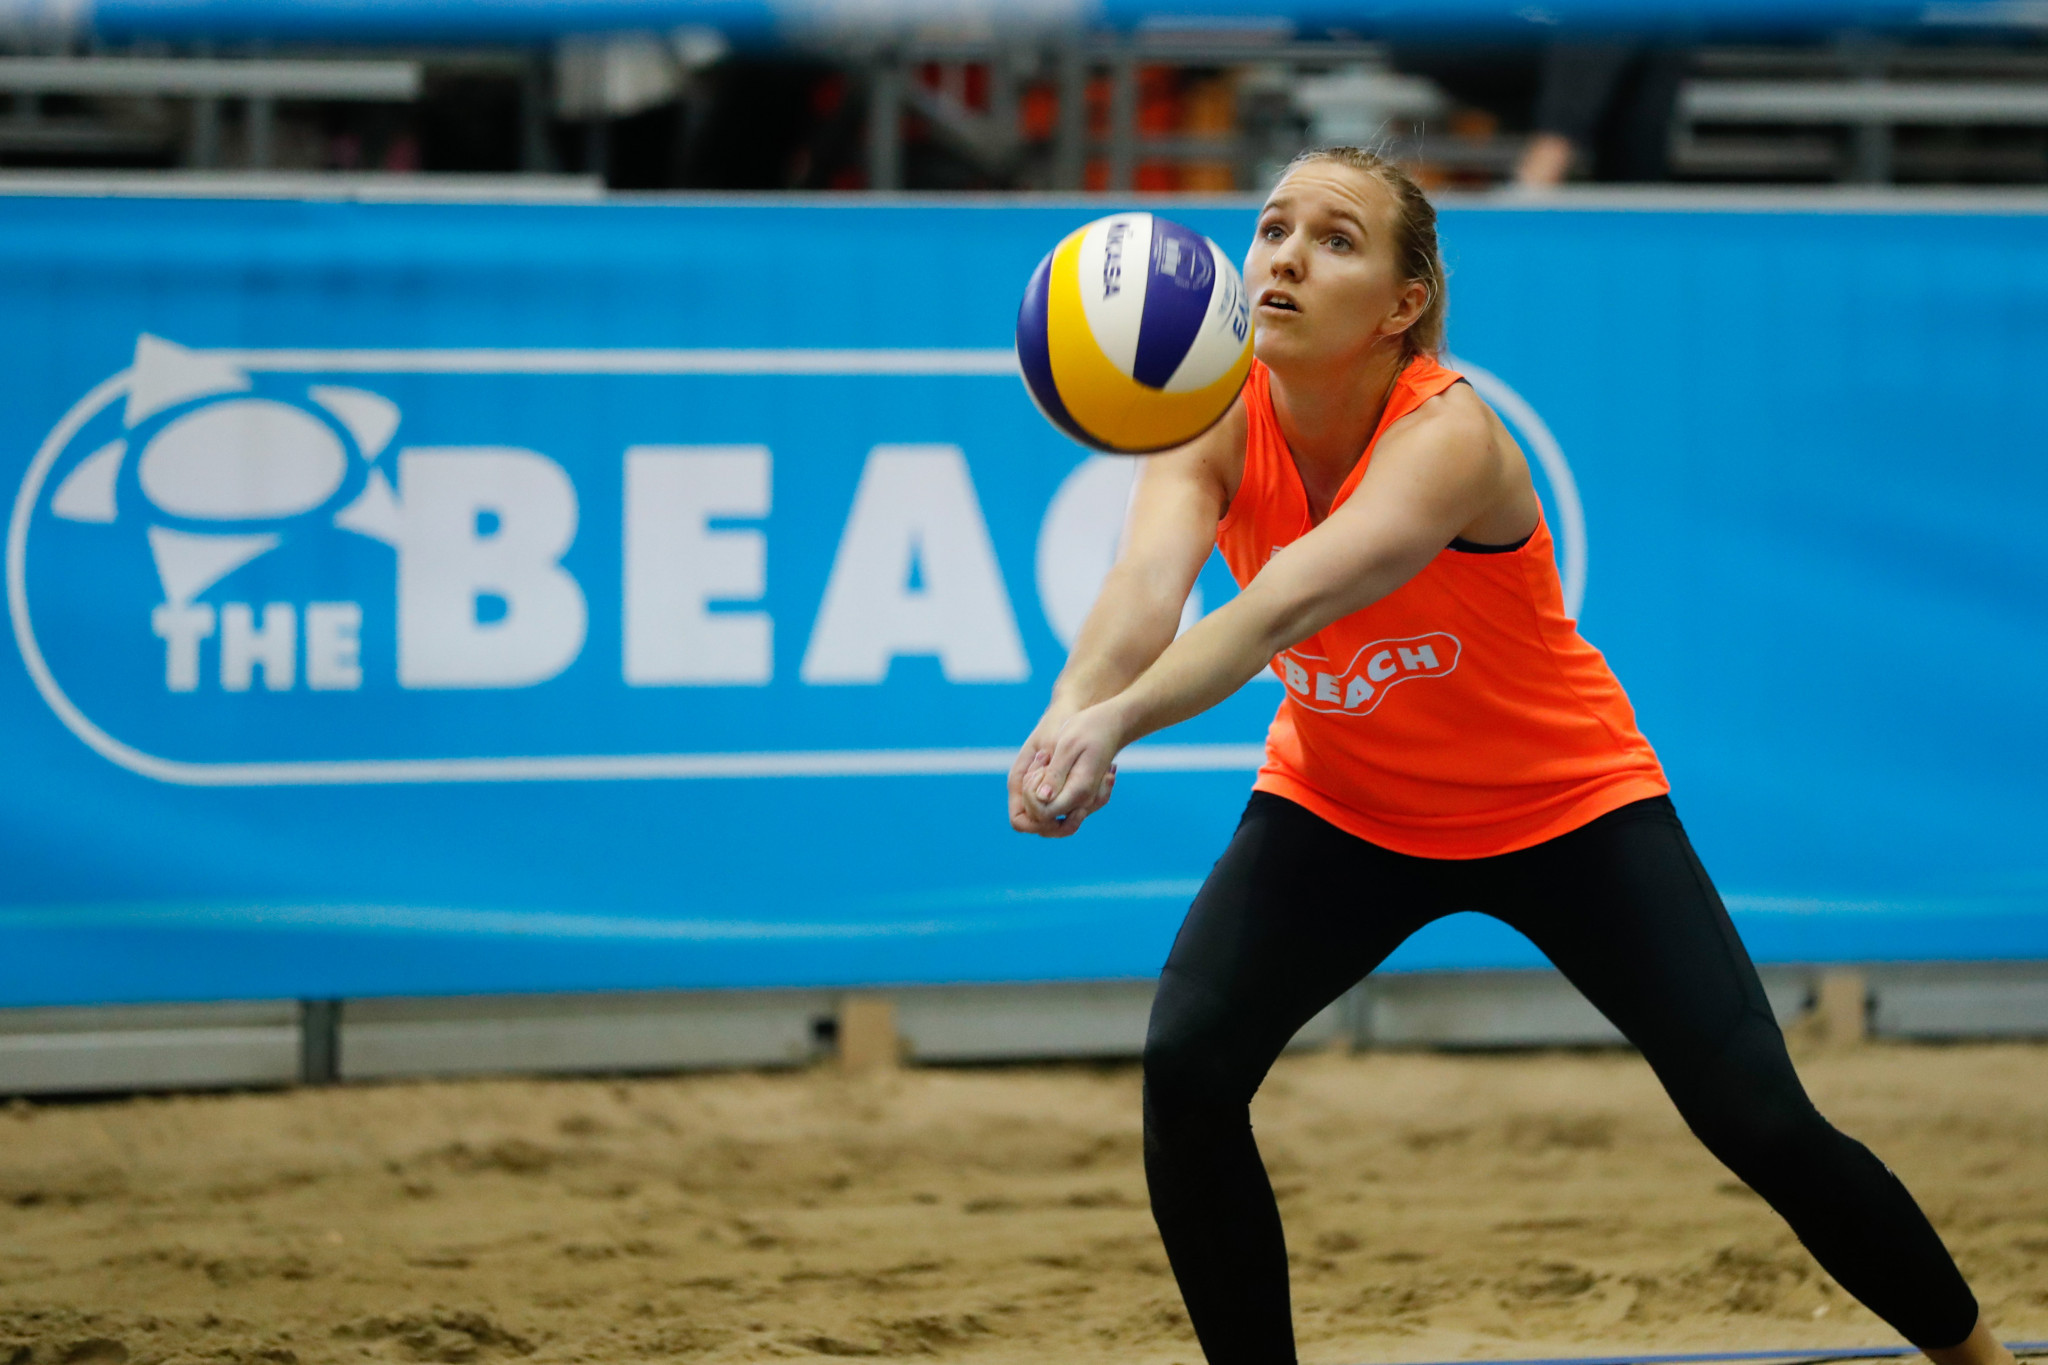 Kristina Thurin, pictured, partnered with Susanna Thurin to progress today ©FIVB